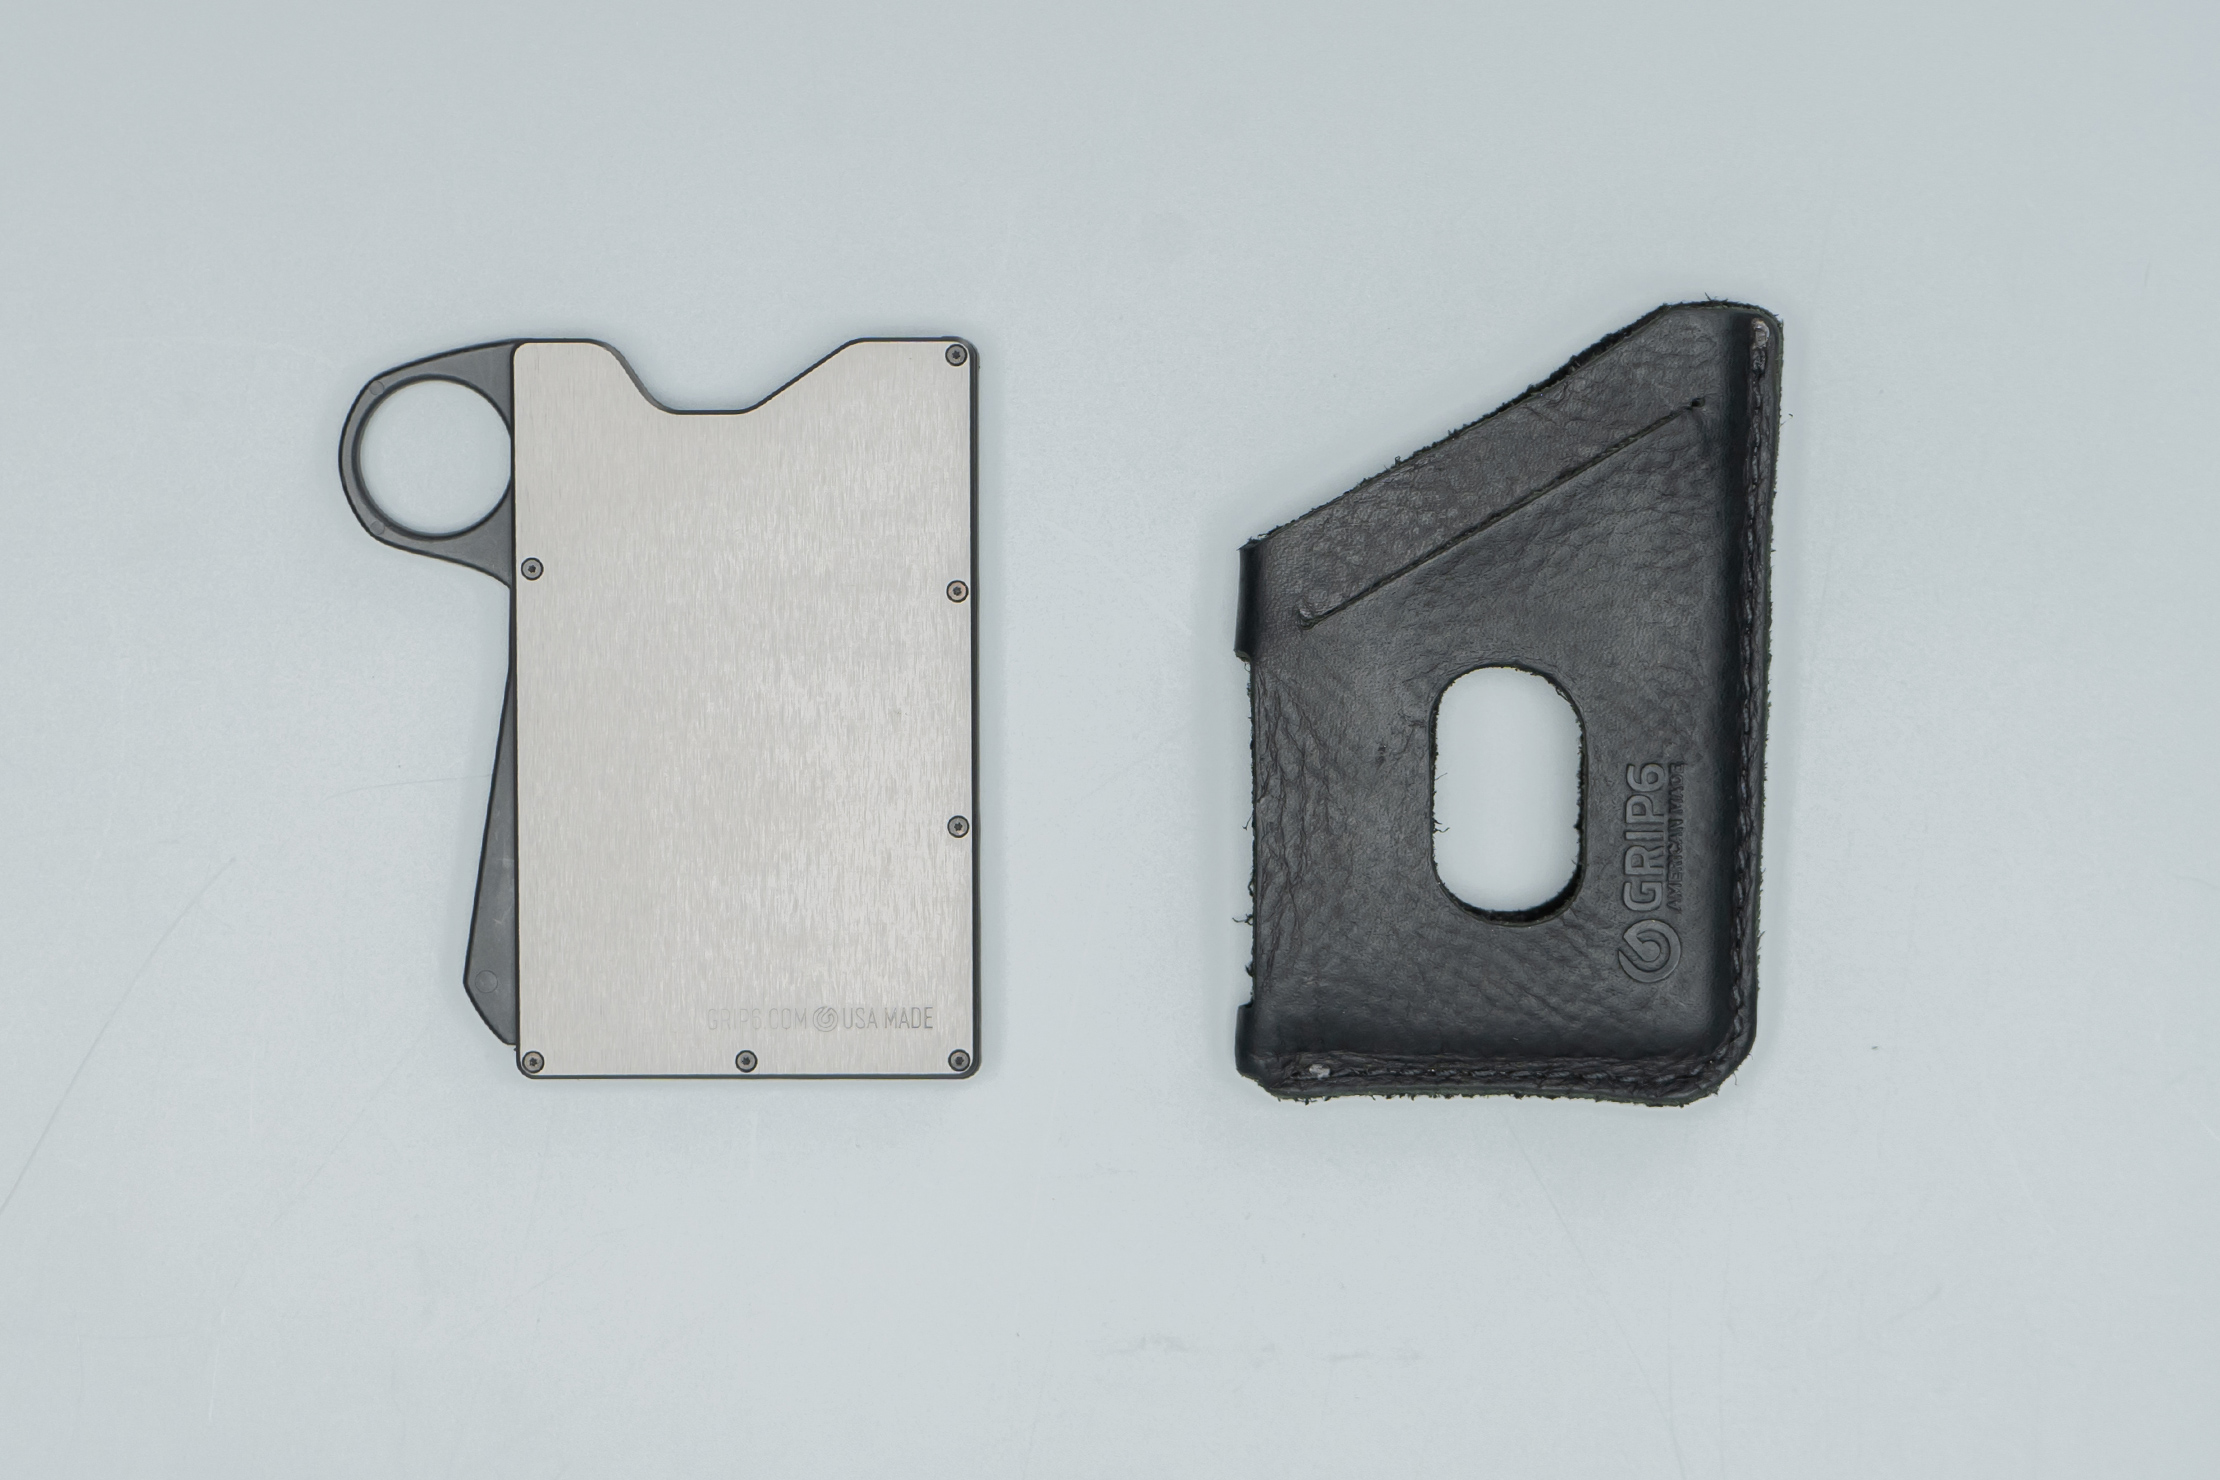 Grip6 Wallet Components Side by Side